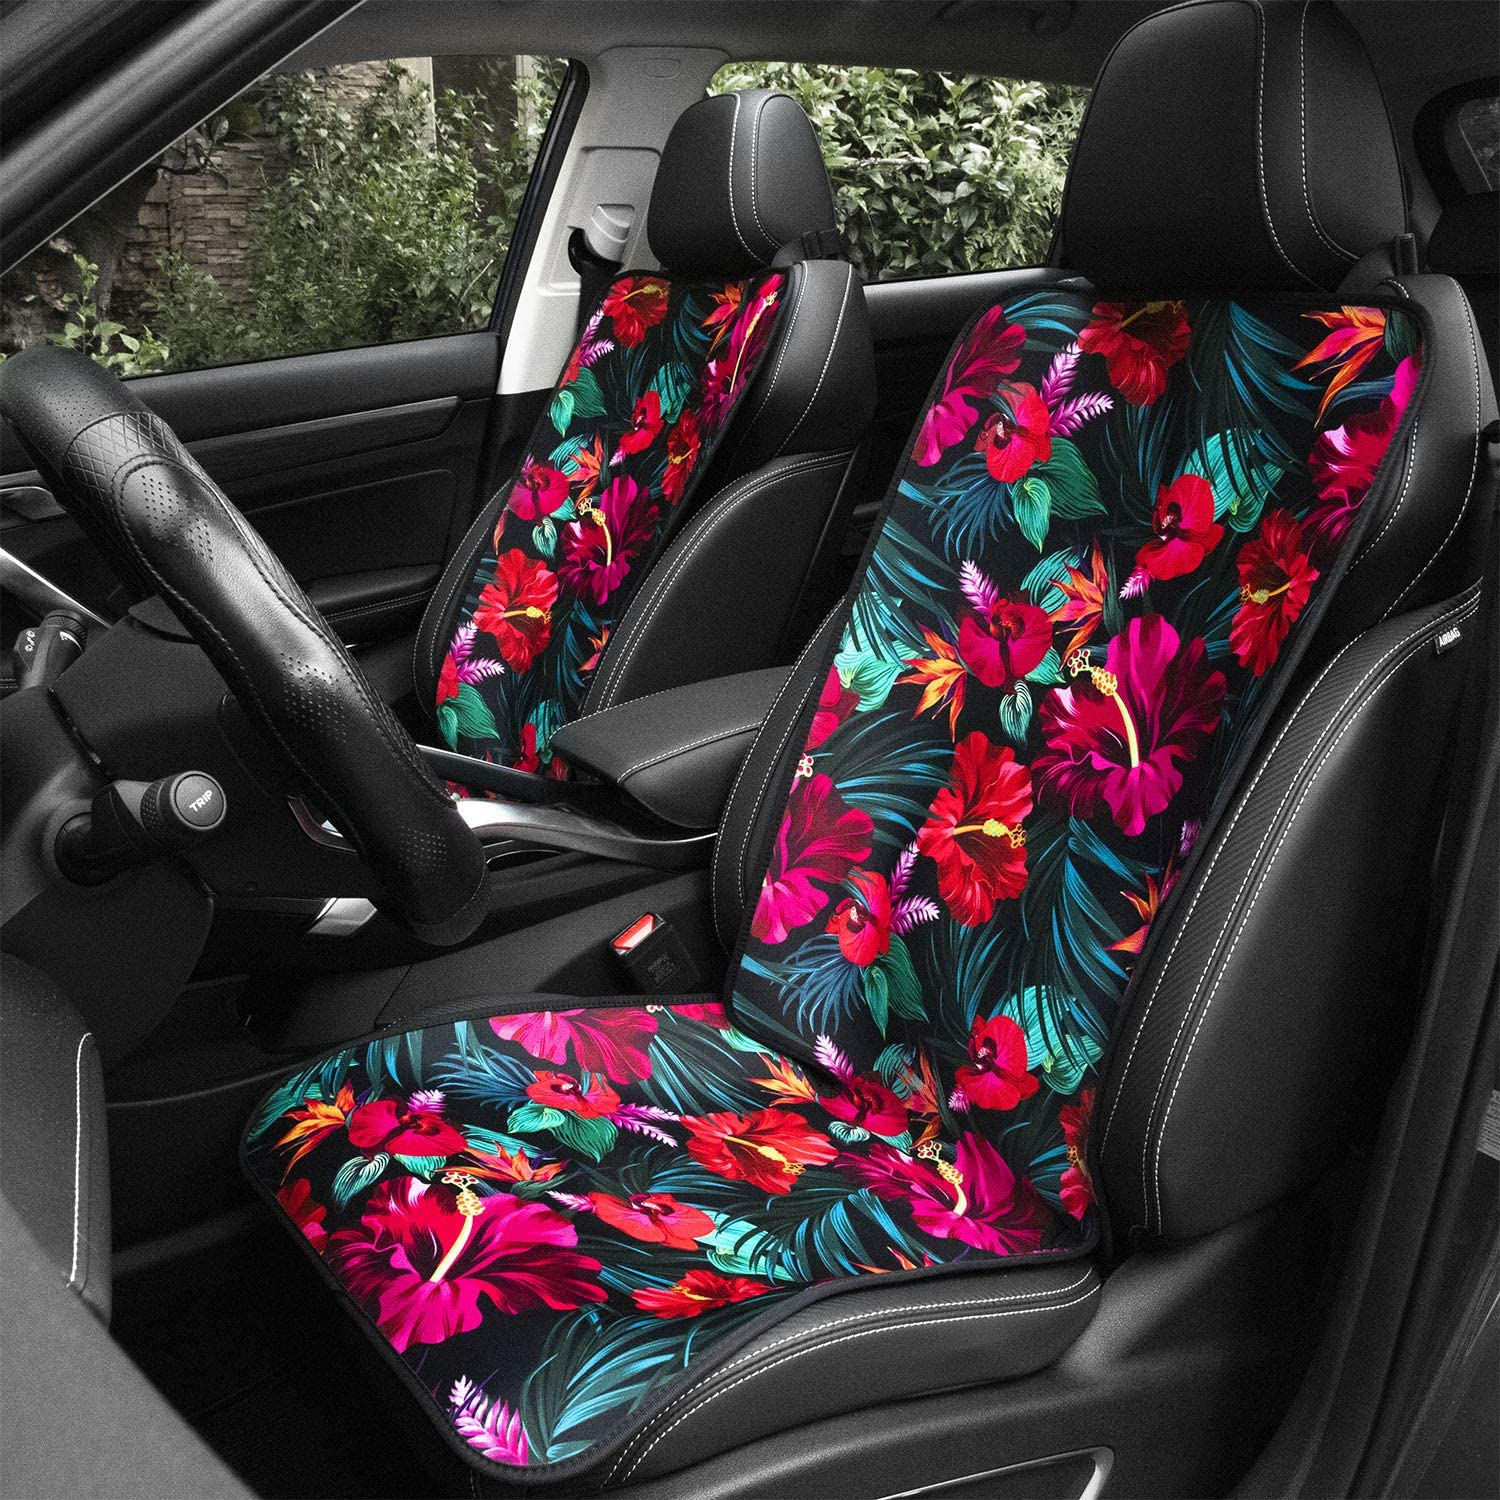 BIGCARJOB Elegant Car Headrest Cover for Women Blue Butterfly Print Elastic Seat Headrest Cover,Full Wrap Cover Set of 2 Universal Fit